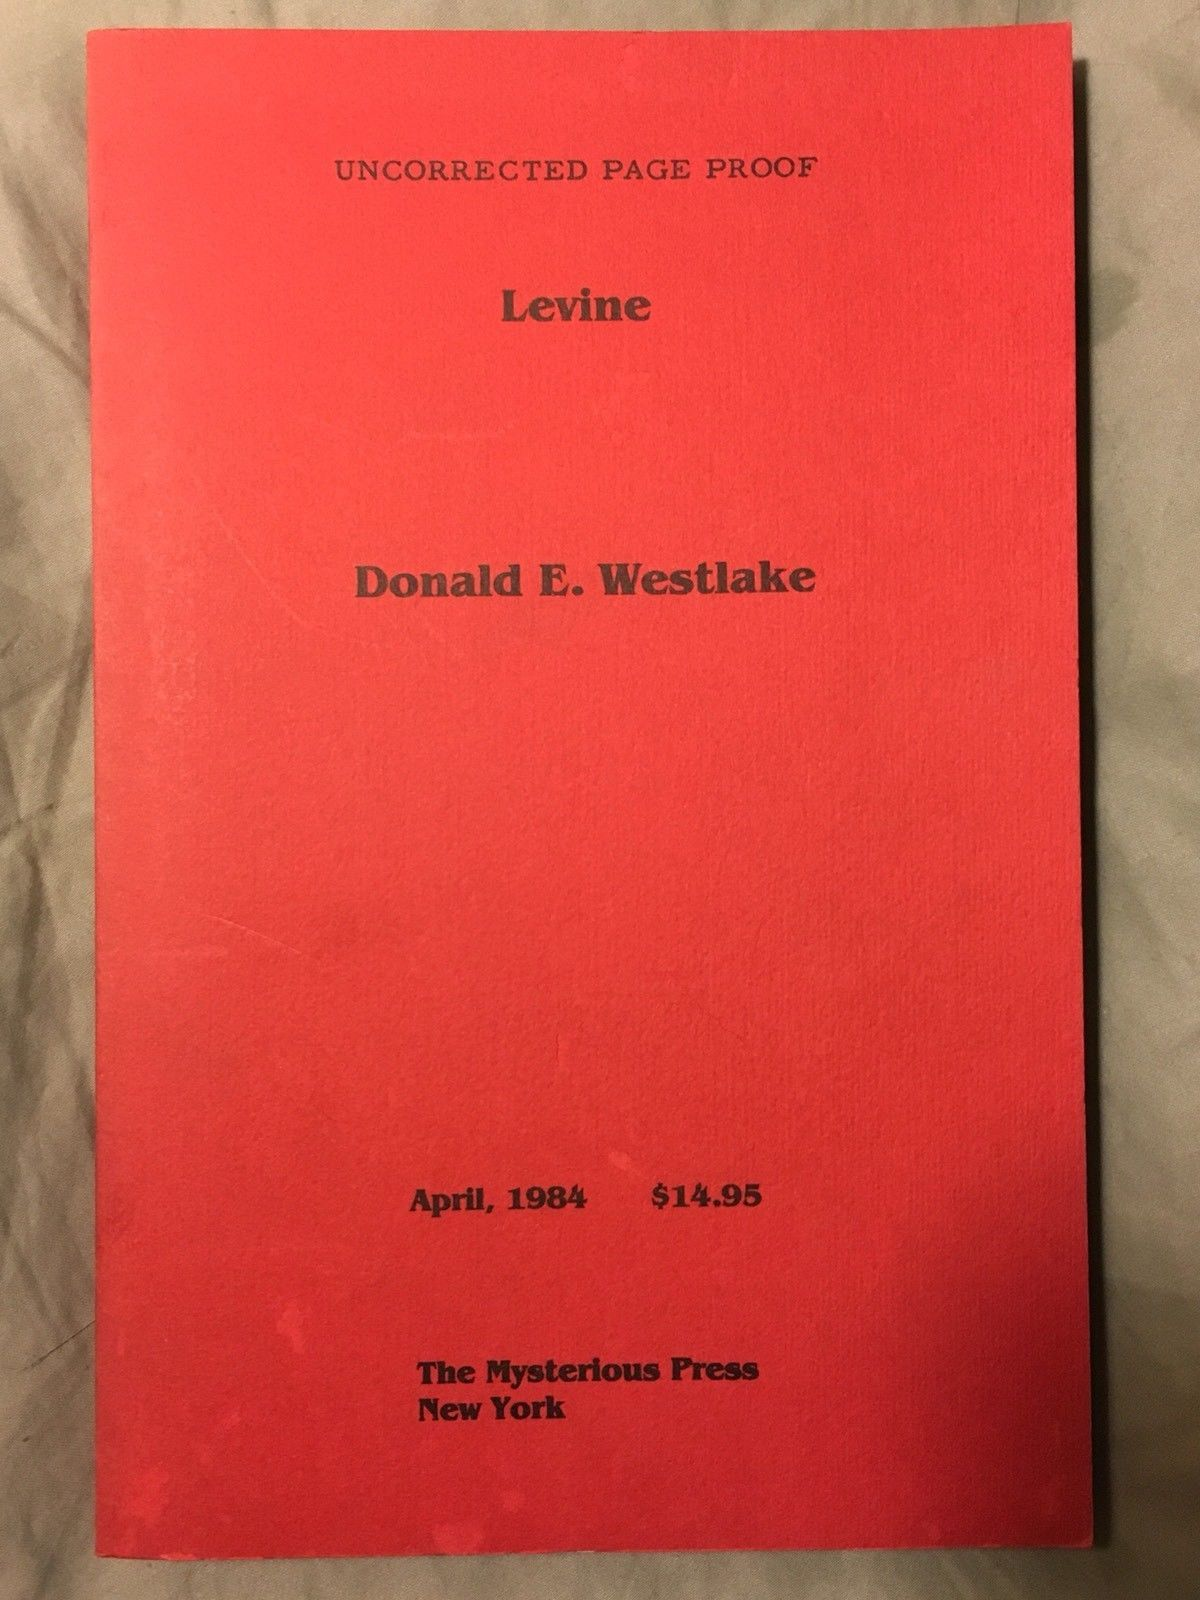 Levine Uncorrected proof - Donald E. Westlake